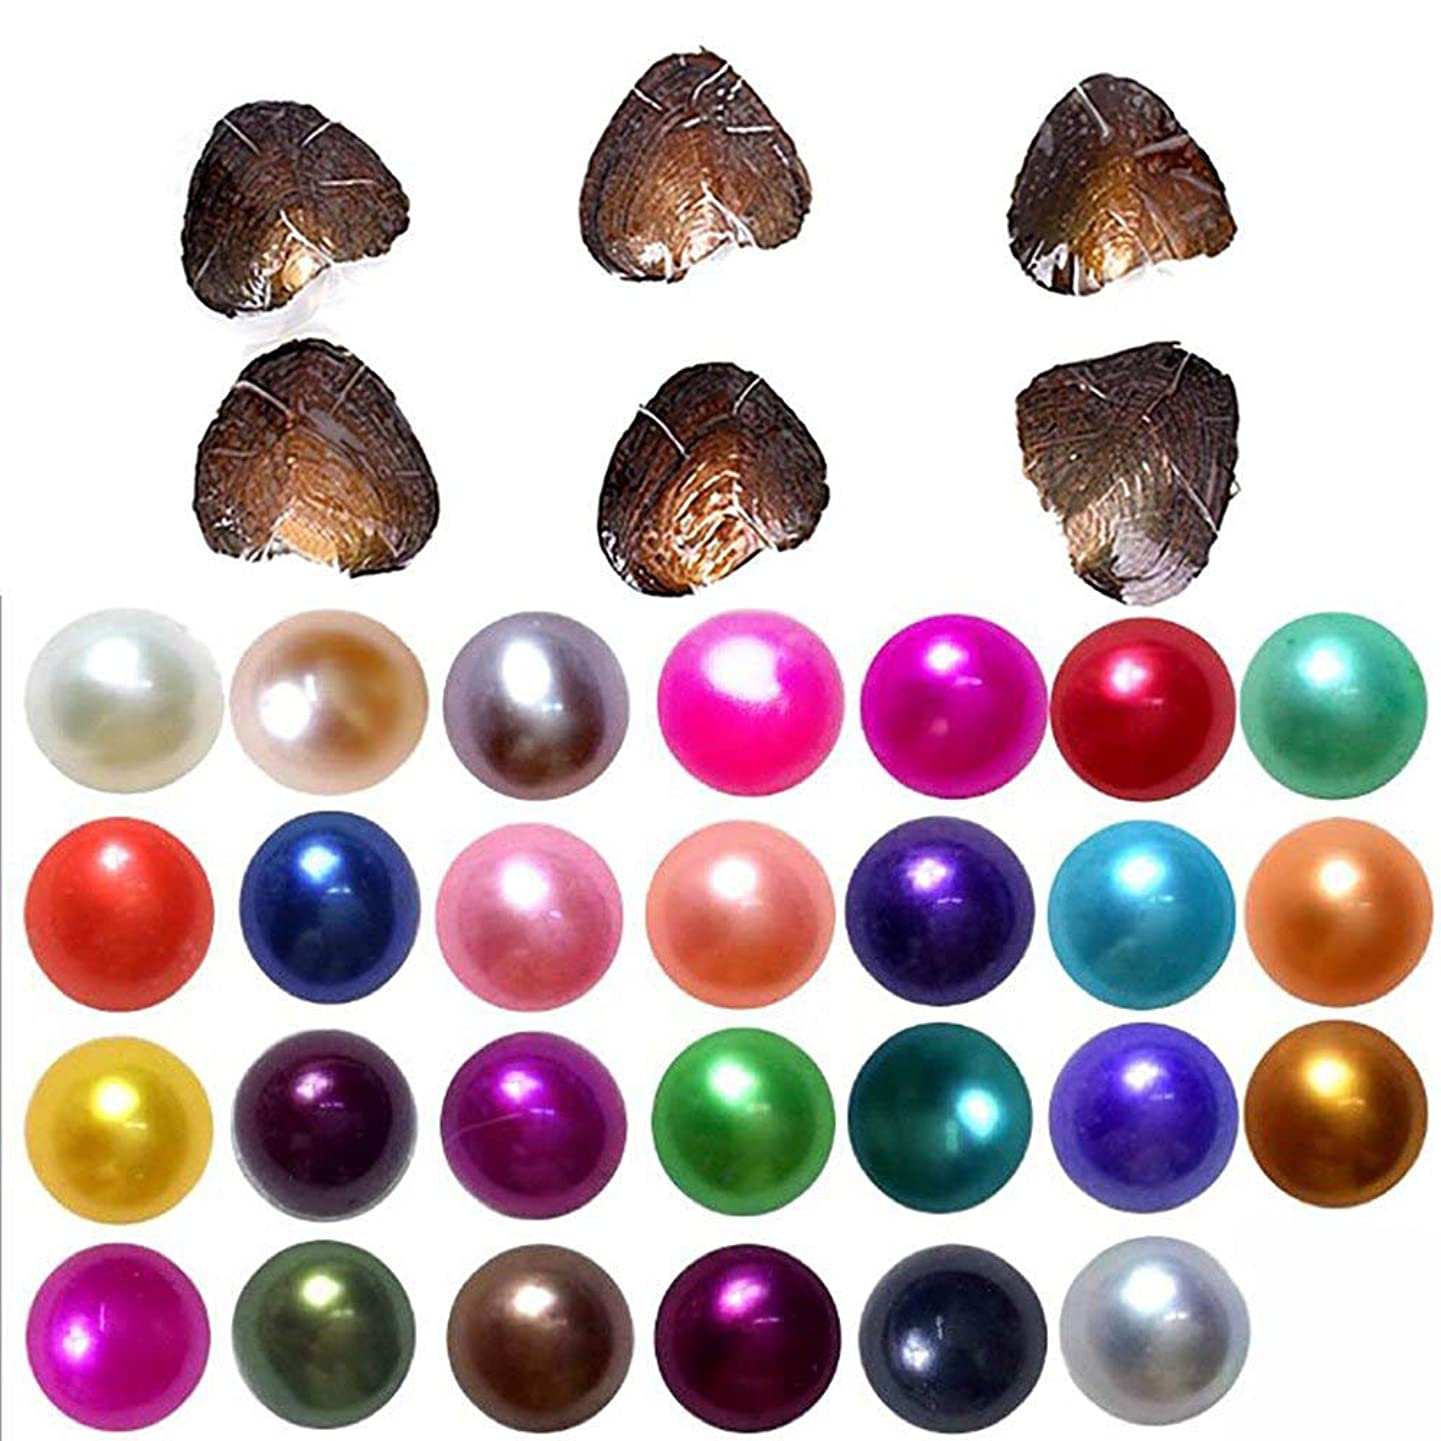 2018-Freshwater Cultured Love Wish Pearl Oyster with Round Pearl Inside 15 Colors (Random Color 15 PCS 7-8mm)